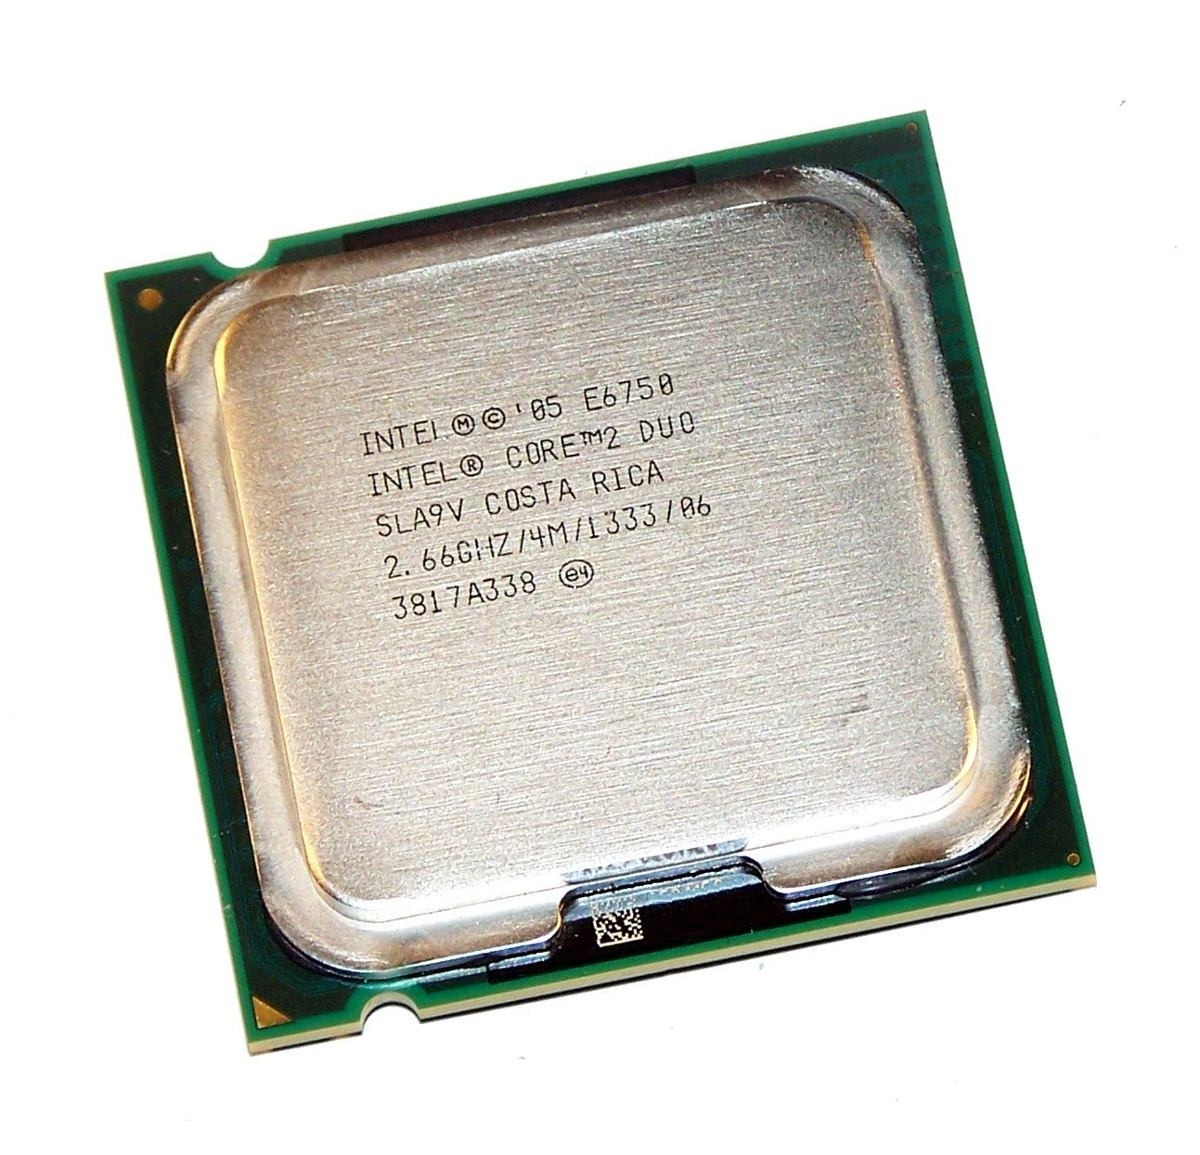 INTEL CORE DUO E6750 WINDOWS 8 DRIVER